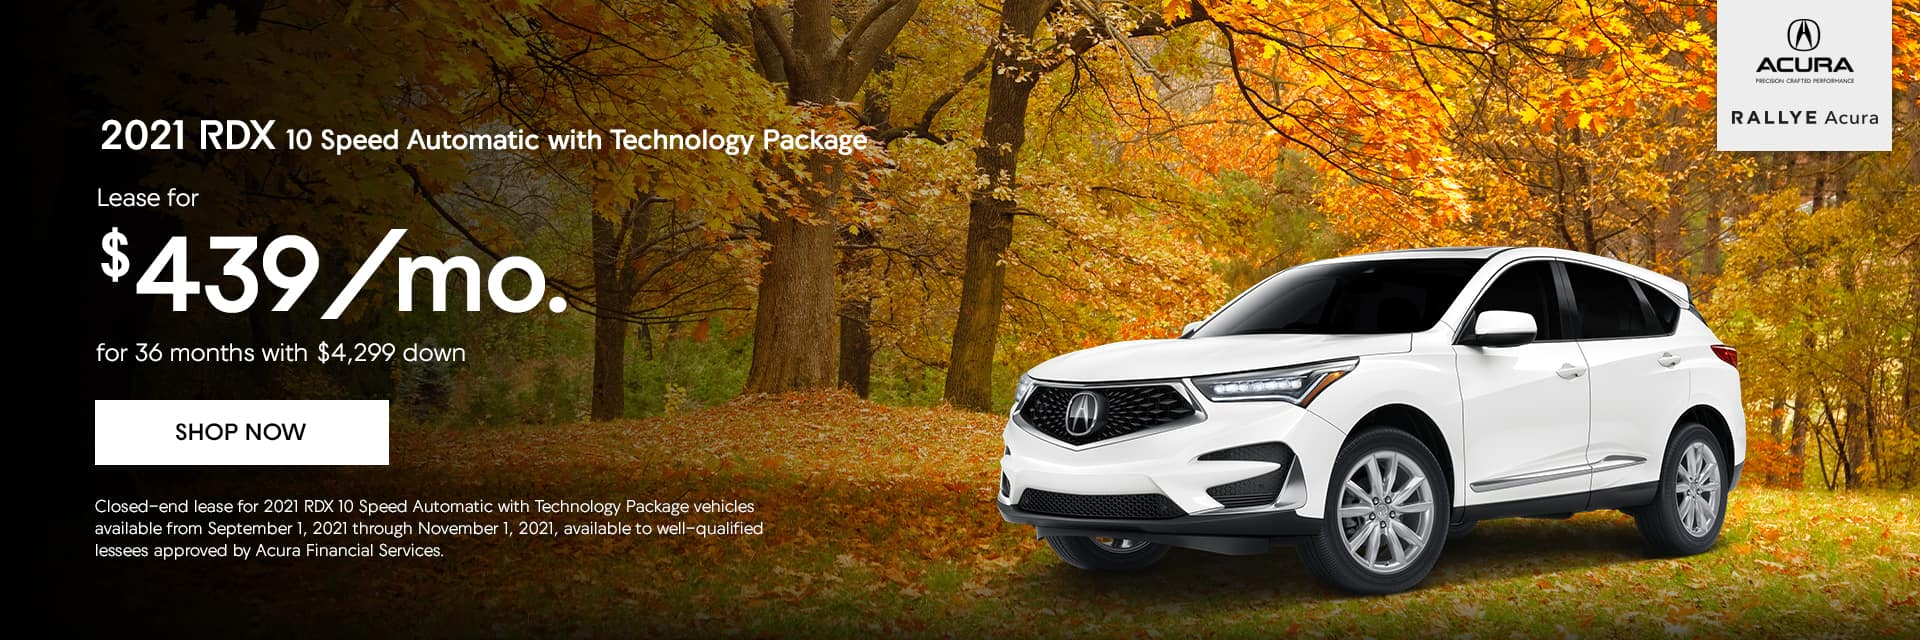 Lease a 2021 RDX 10 Speed Automatic with Technology Package, $439/mo. for 36 months with $4,299 down